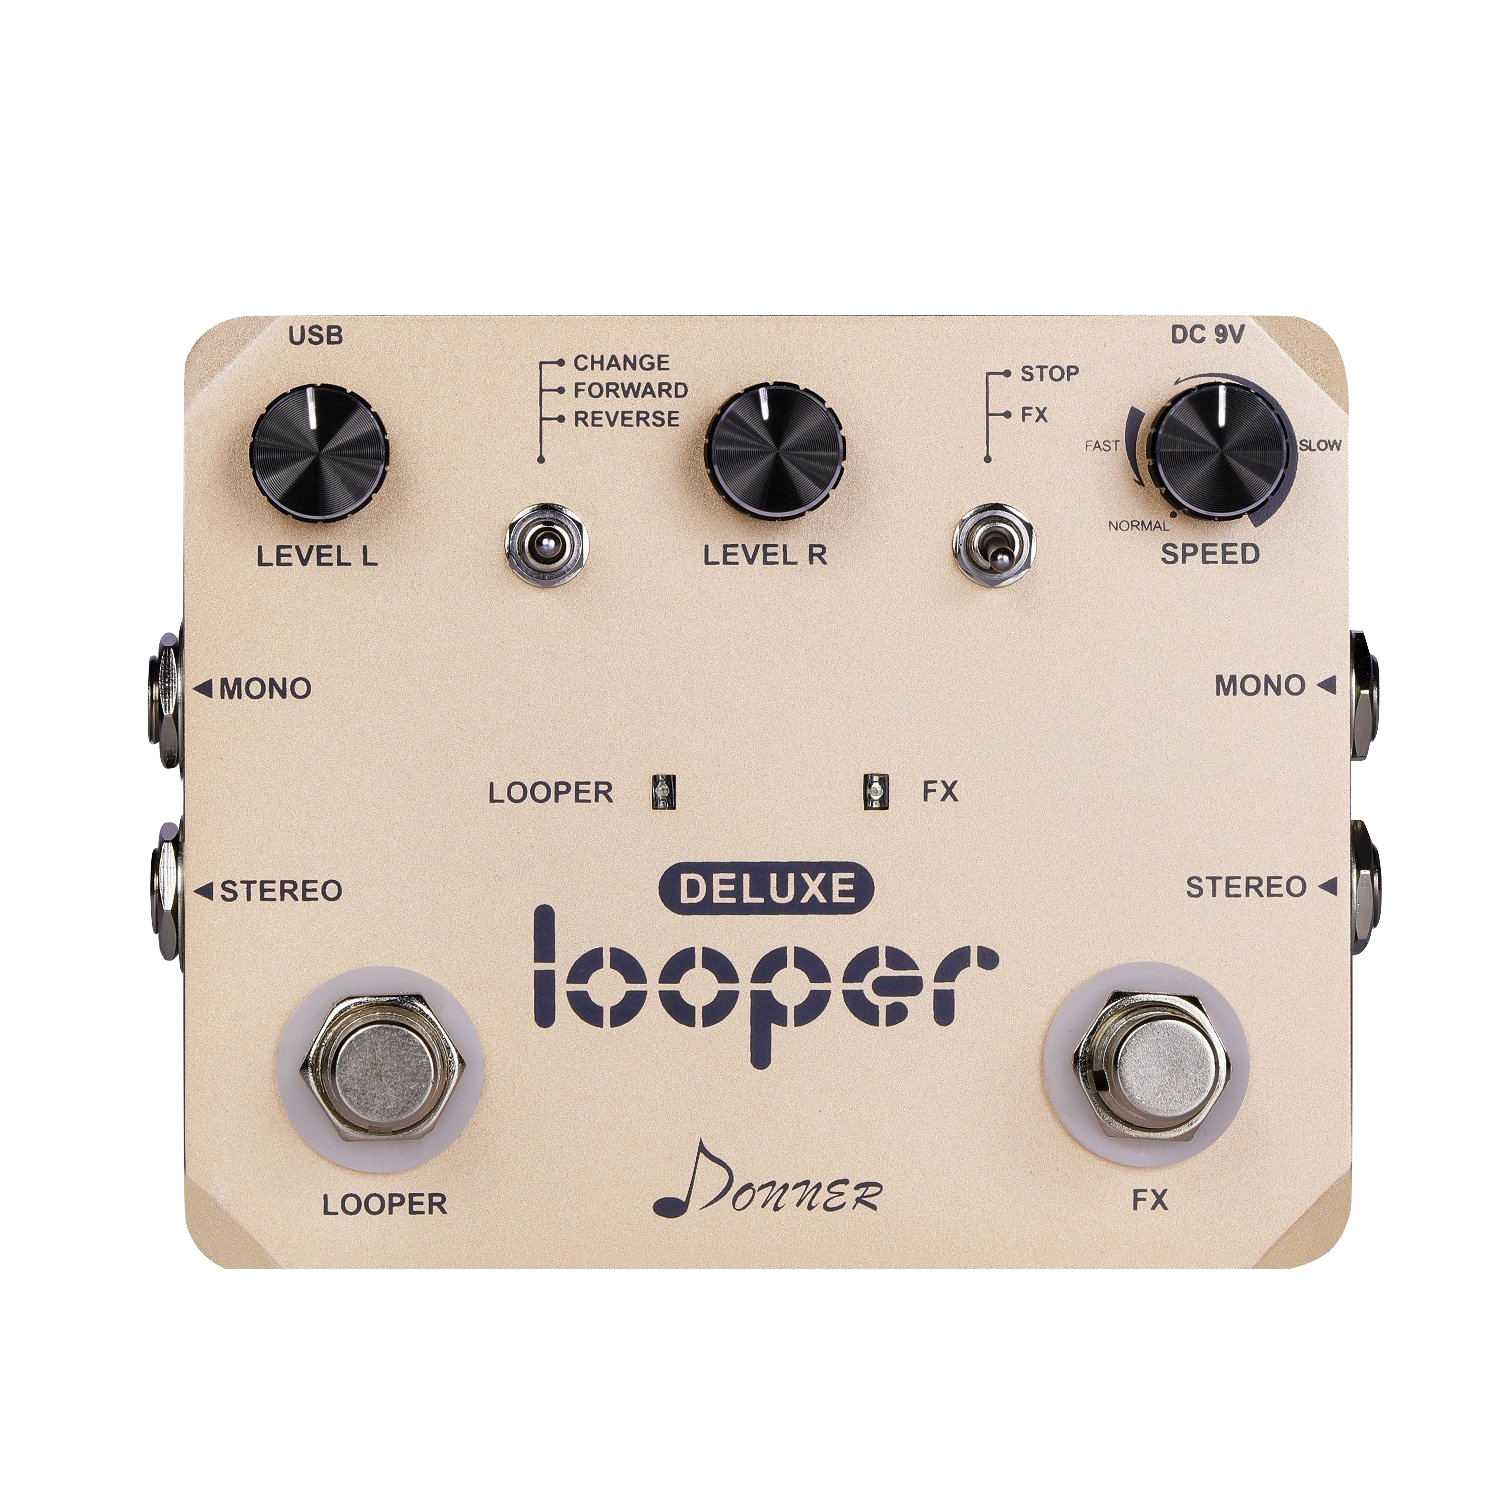 donner deluxe looper guitar pedal first look review greg kocis producer songwriter musician. Black Bedroom Furniture Sets. Home Design Ideas